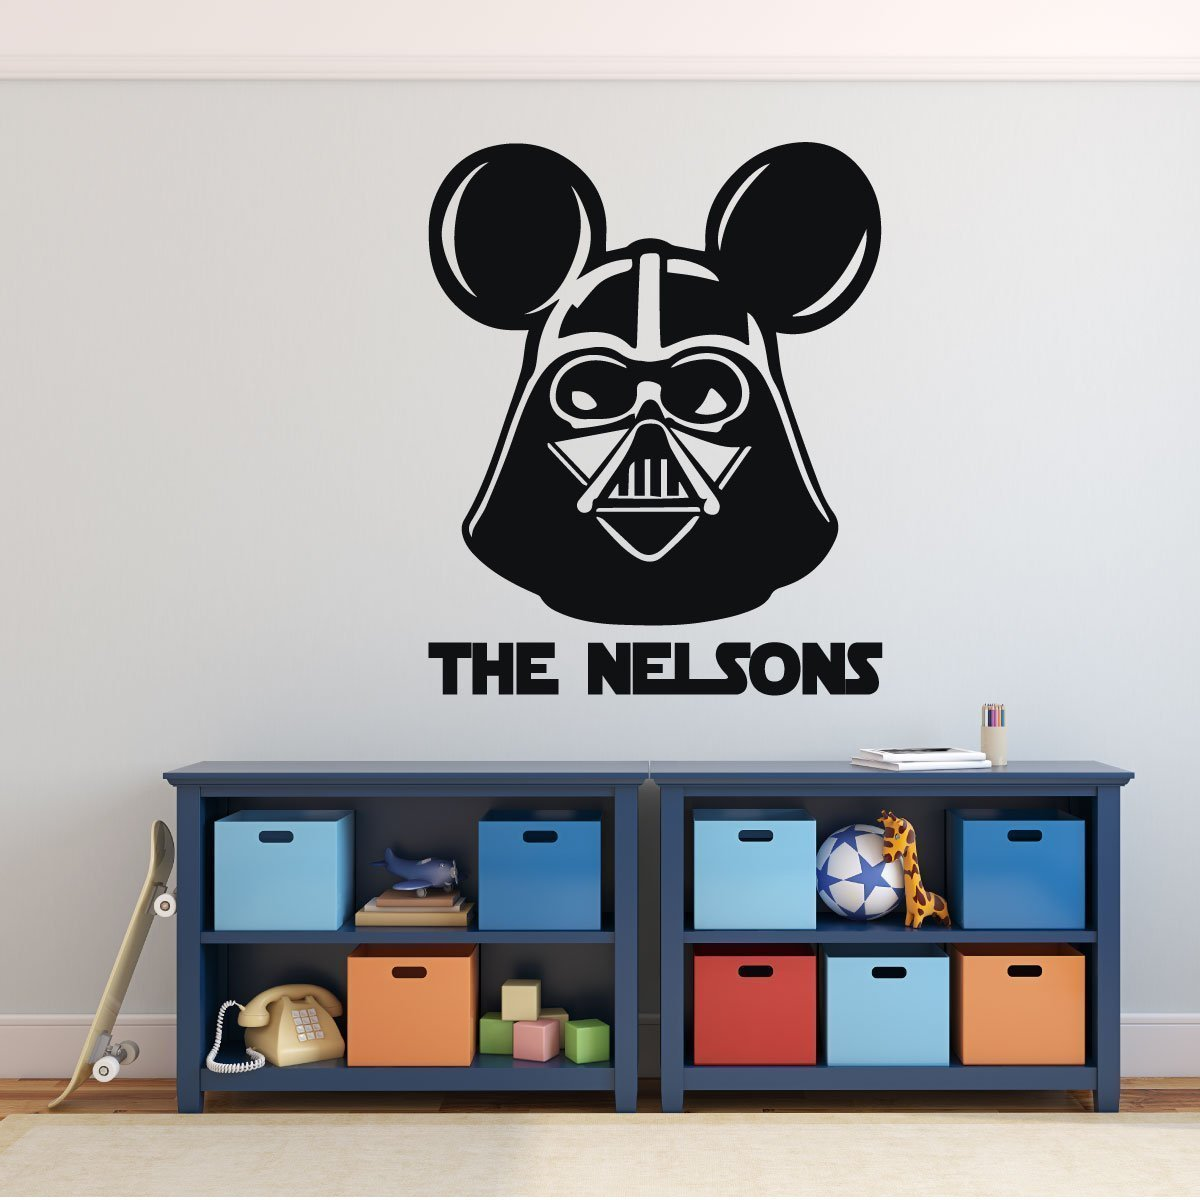 Darth Vader Mickey Mouse Personalized wall Decal , Sticker or Vinyl Decoration - Gift For Teacher or Classroom Wall Decor- Boy'sBedroom